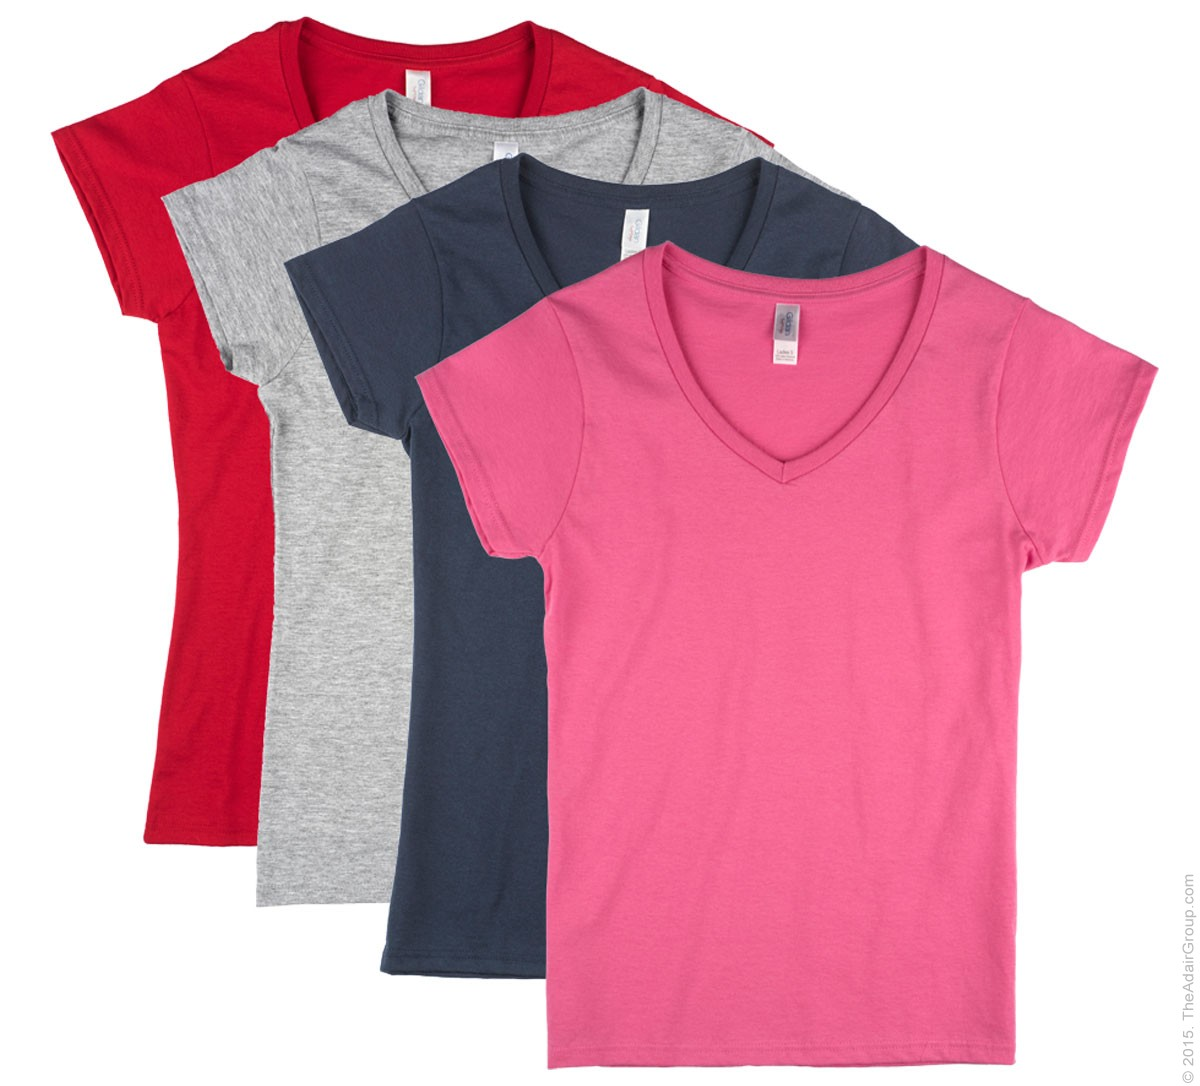 Women's T-Shirts at Wholesale Prices - #1 Selection Available